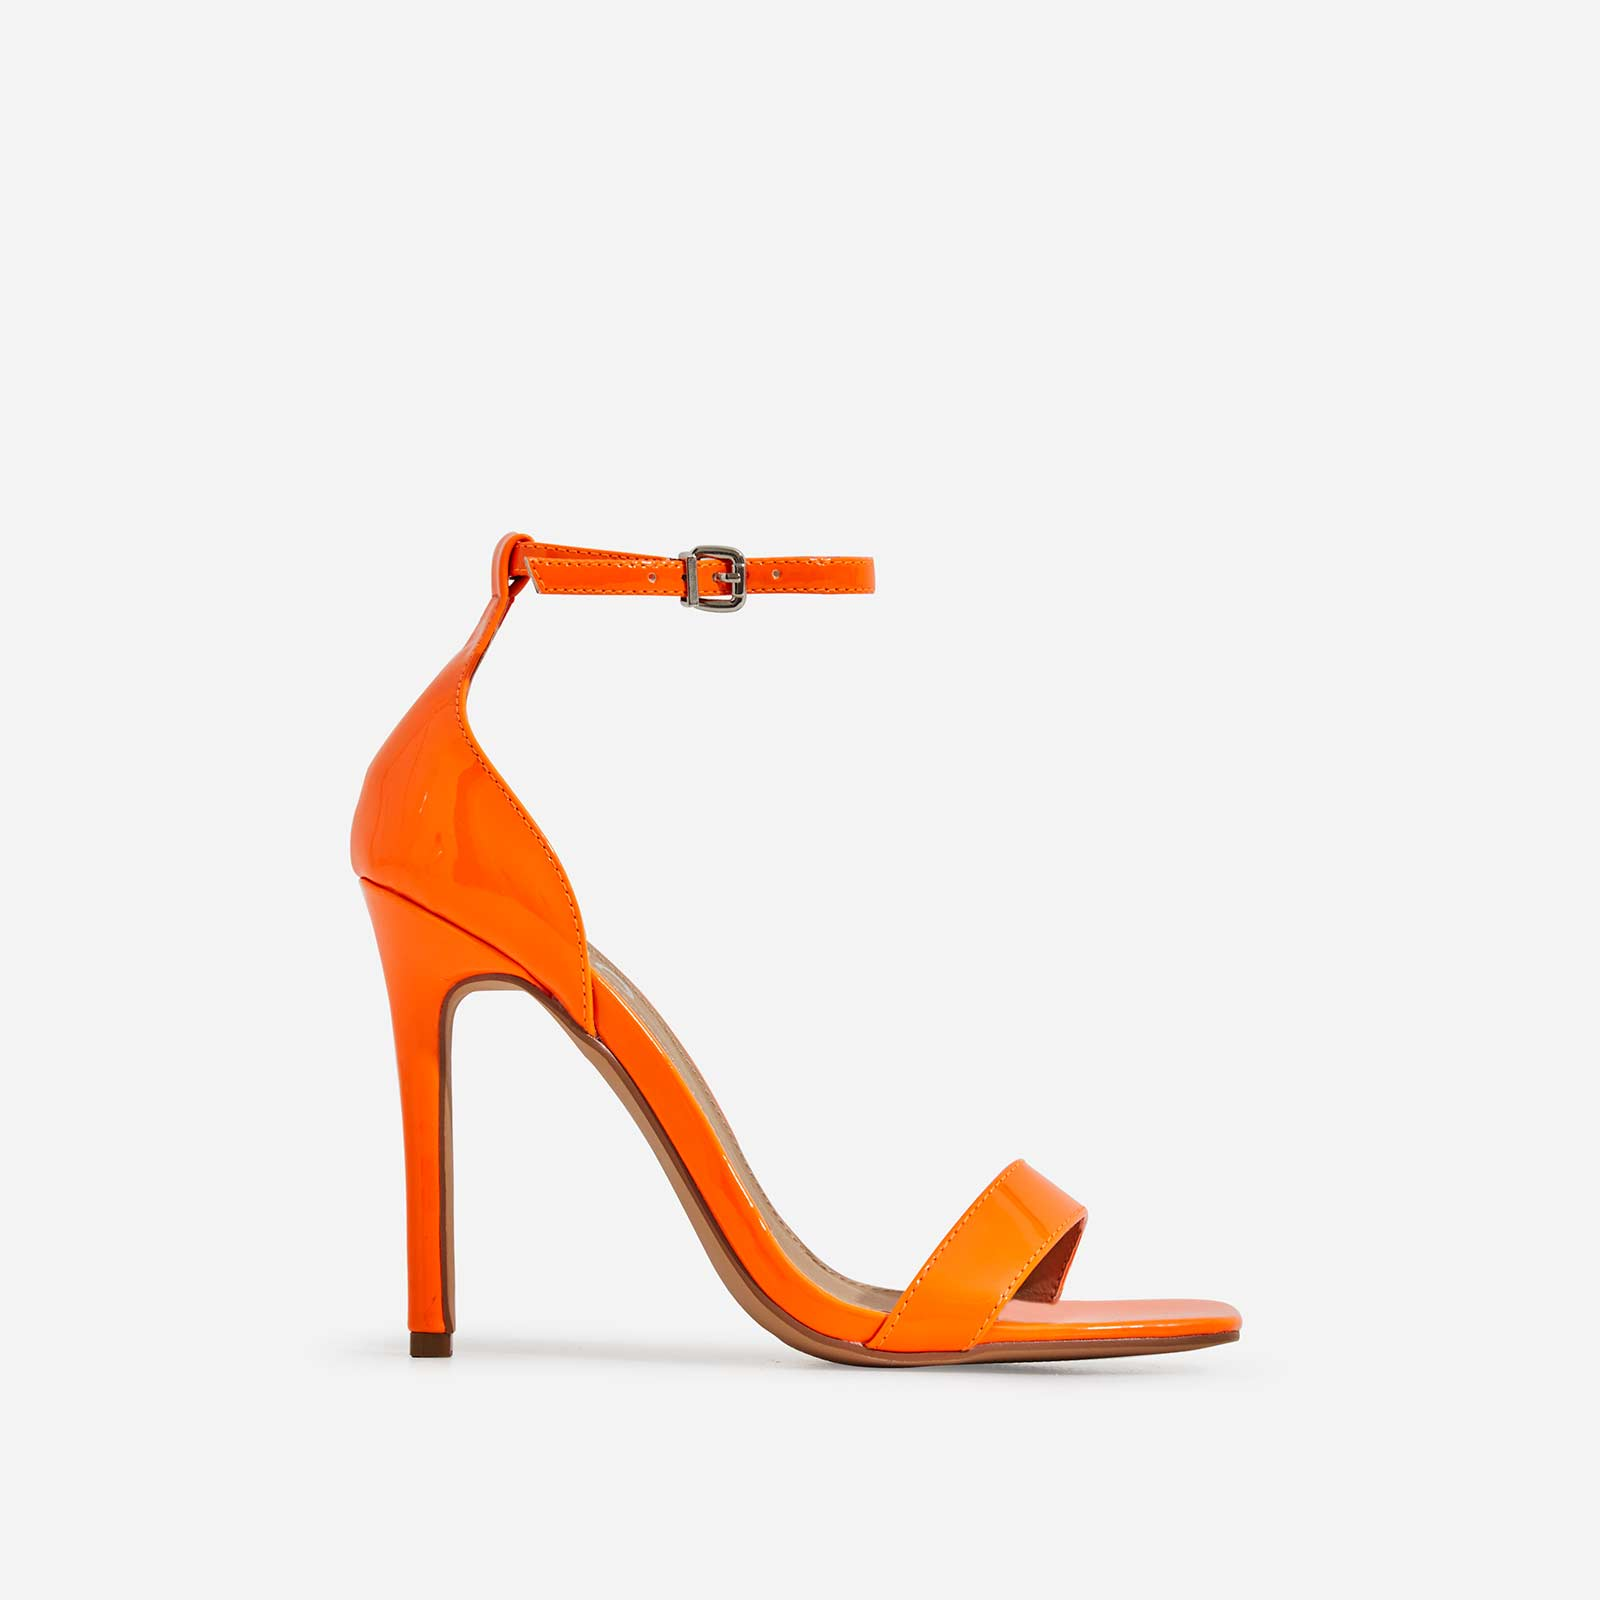 Court Barely There Square Toe Heel In Neon Orange Patent